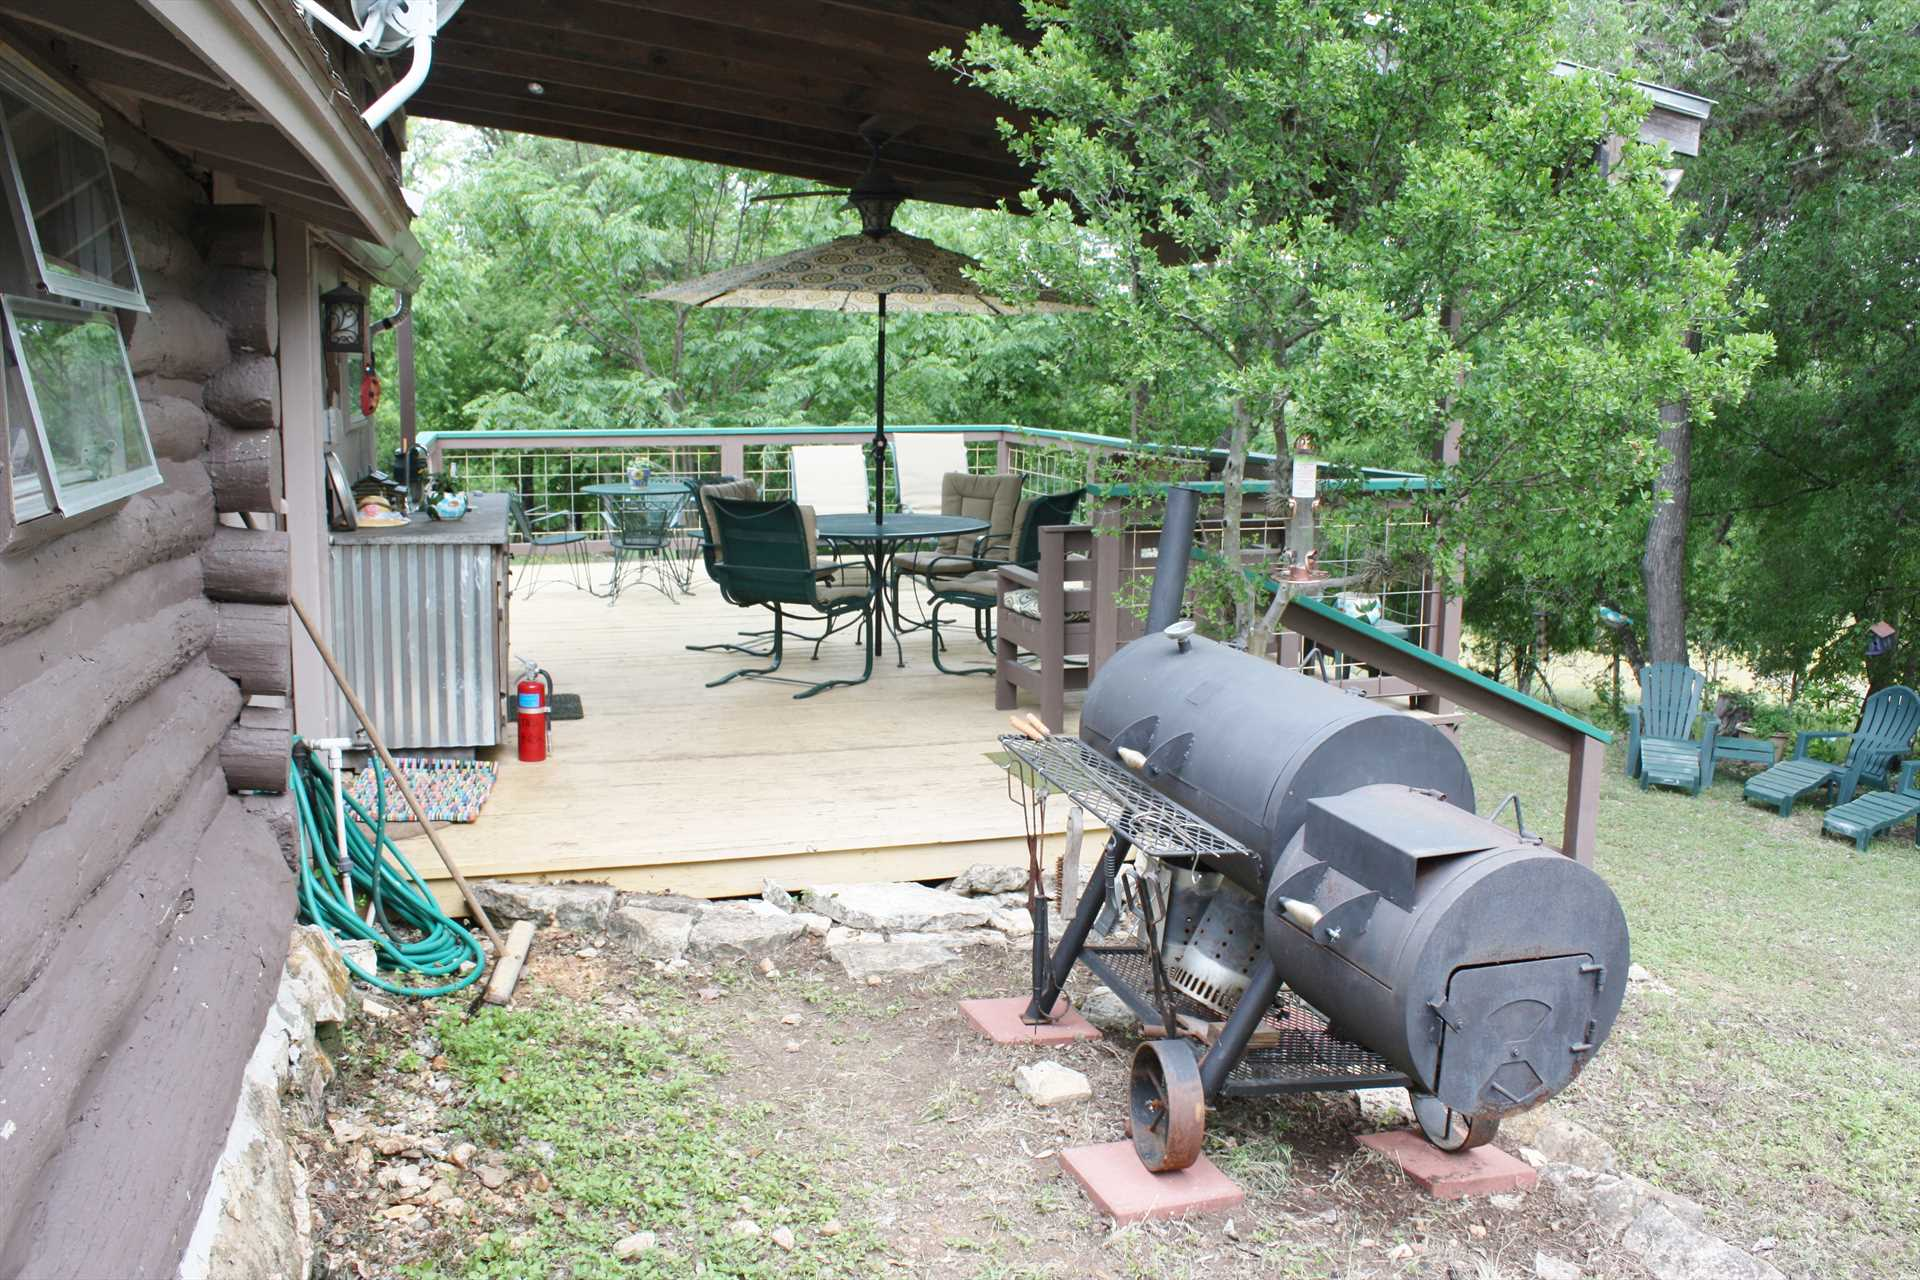 The combo charcoal grill and smoker is just the place for the BBQ kings and queens in your group to show off!